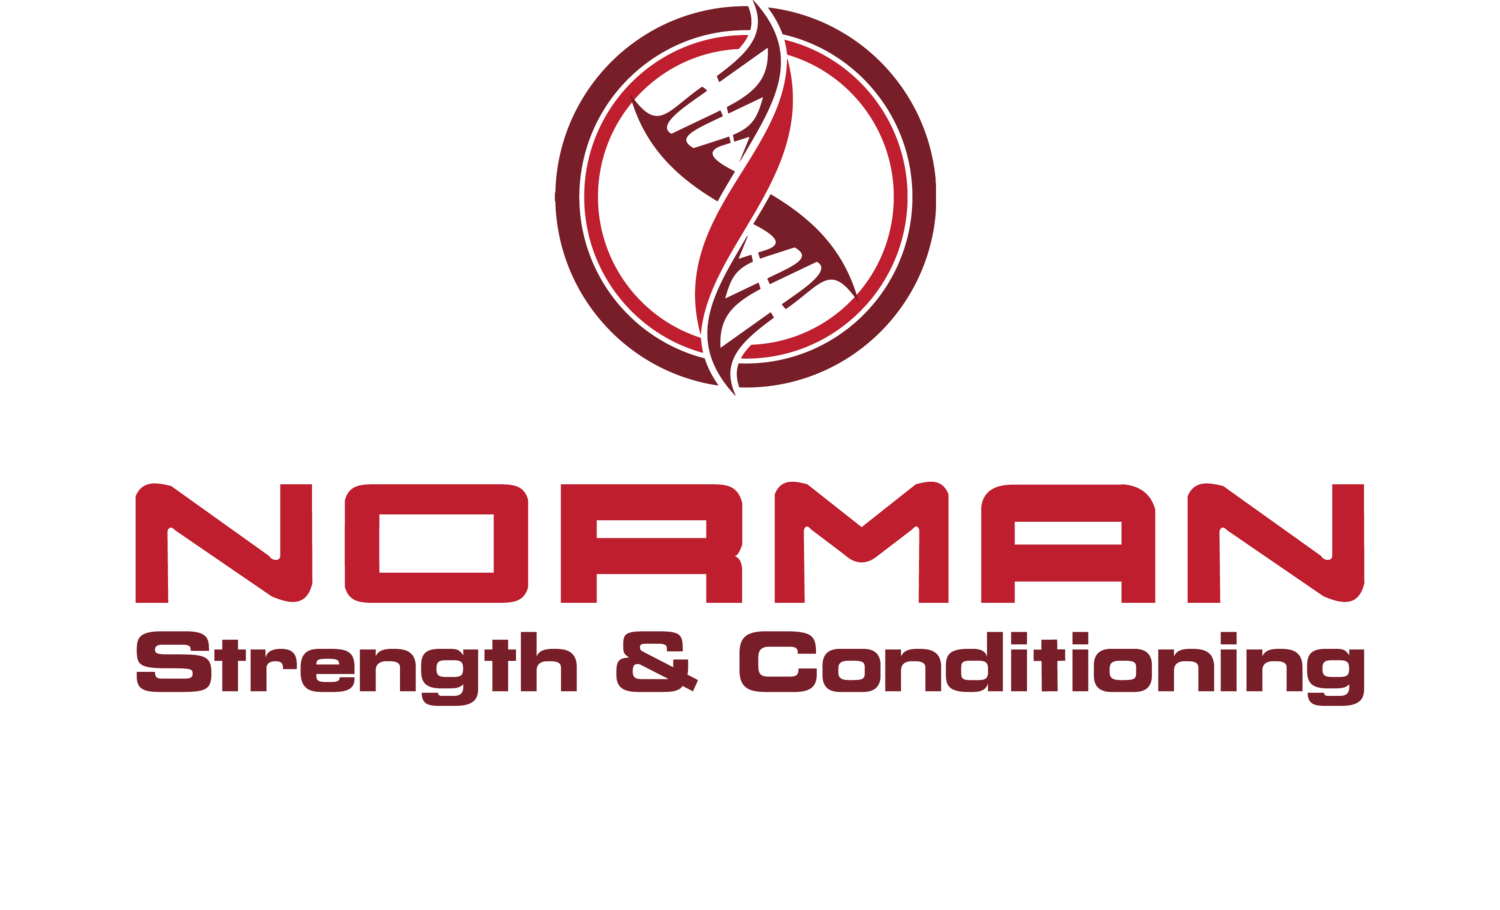 Norman Strength